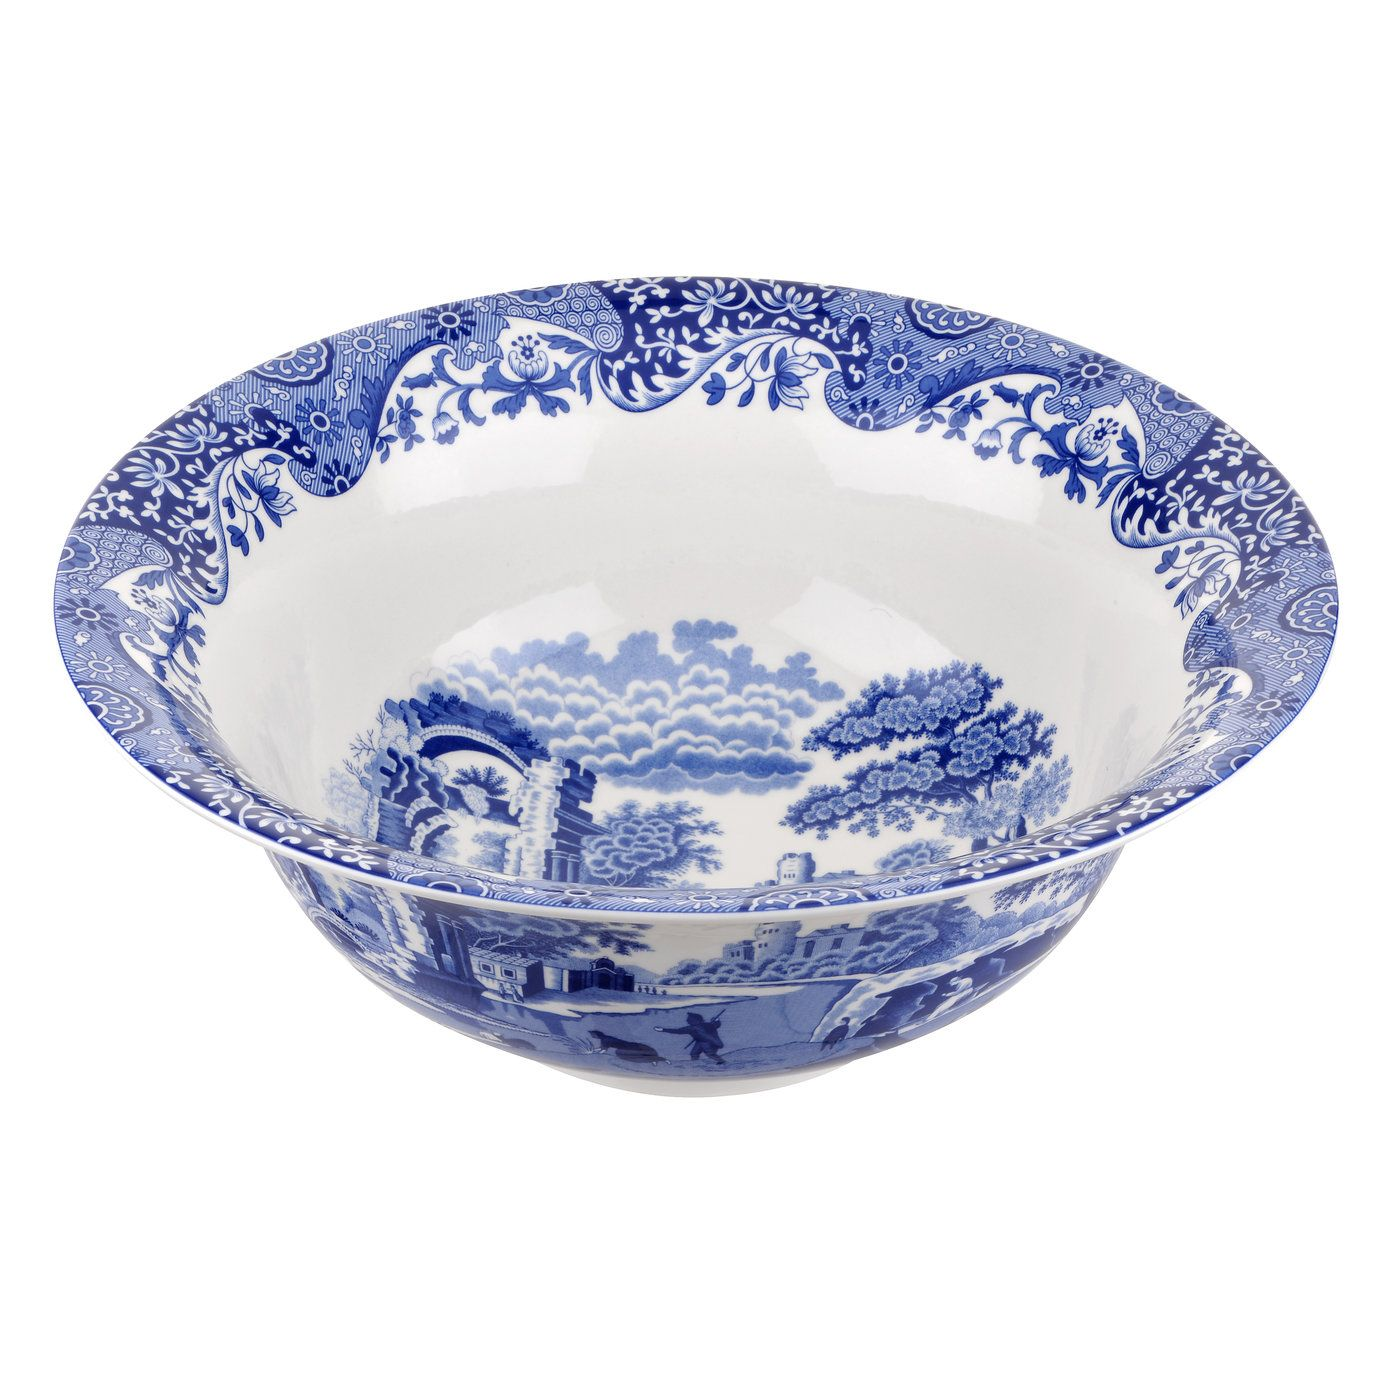 Image of Spode Blue Italian 200th Anniversary Bowl